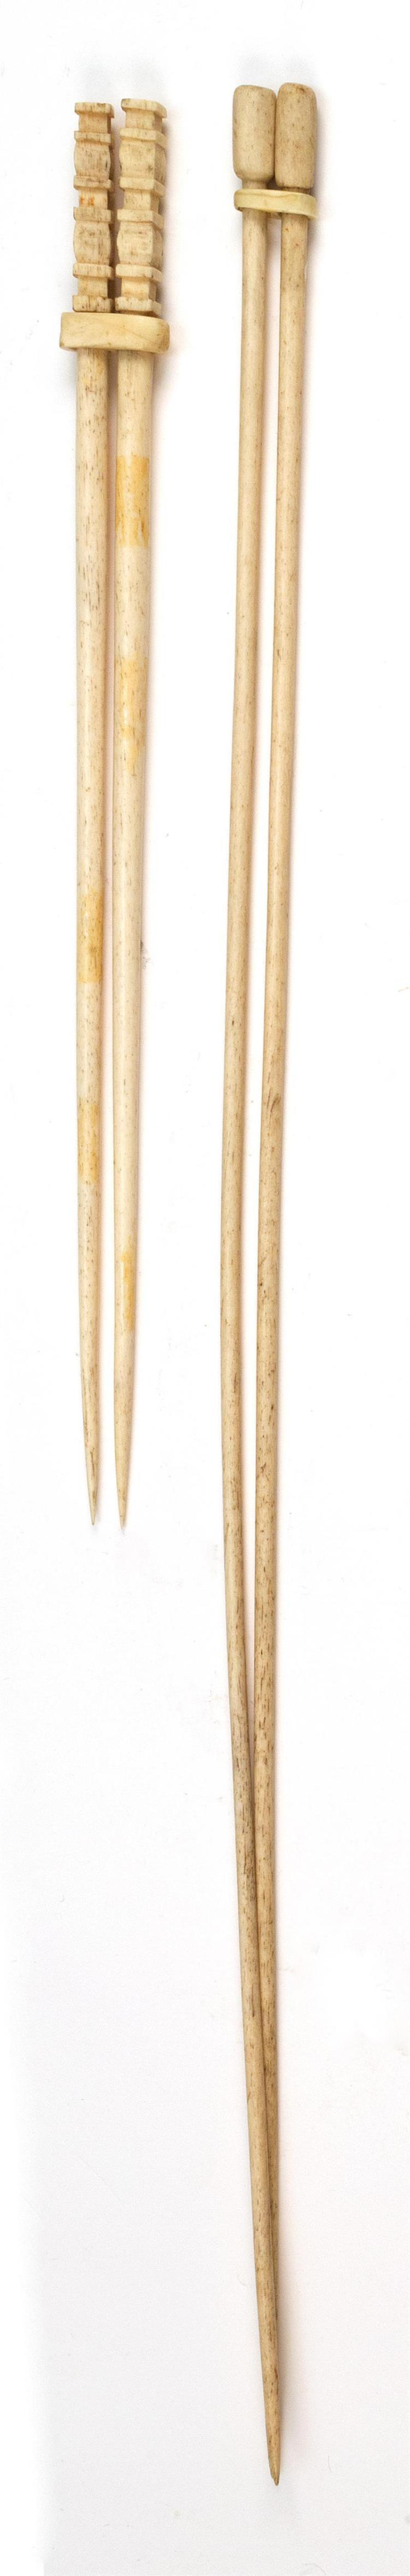 TWO PAIRS OF WHALEBONE KNITTING NEEDLES One pair with geometric carved finials. Both pairs with sliding mechanism that keeps the nee...